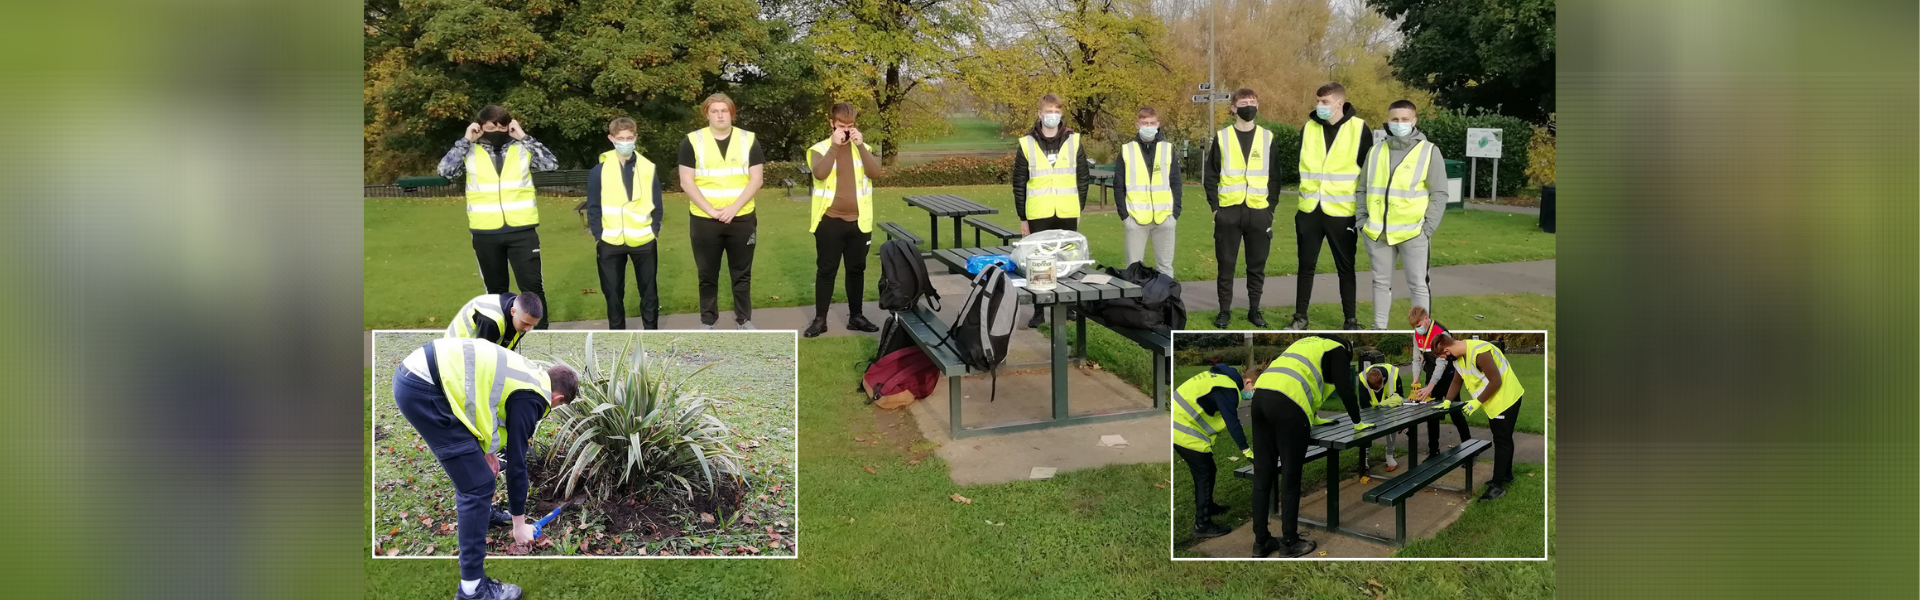 'It's fantastic to see young people supporting their community during this challenging time': NCS participants get green-fingered at Sandall Park.